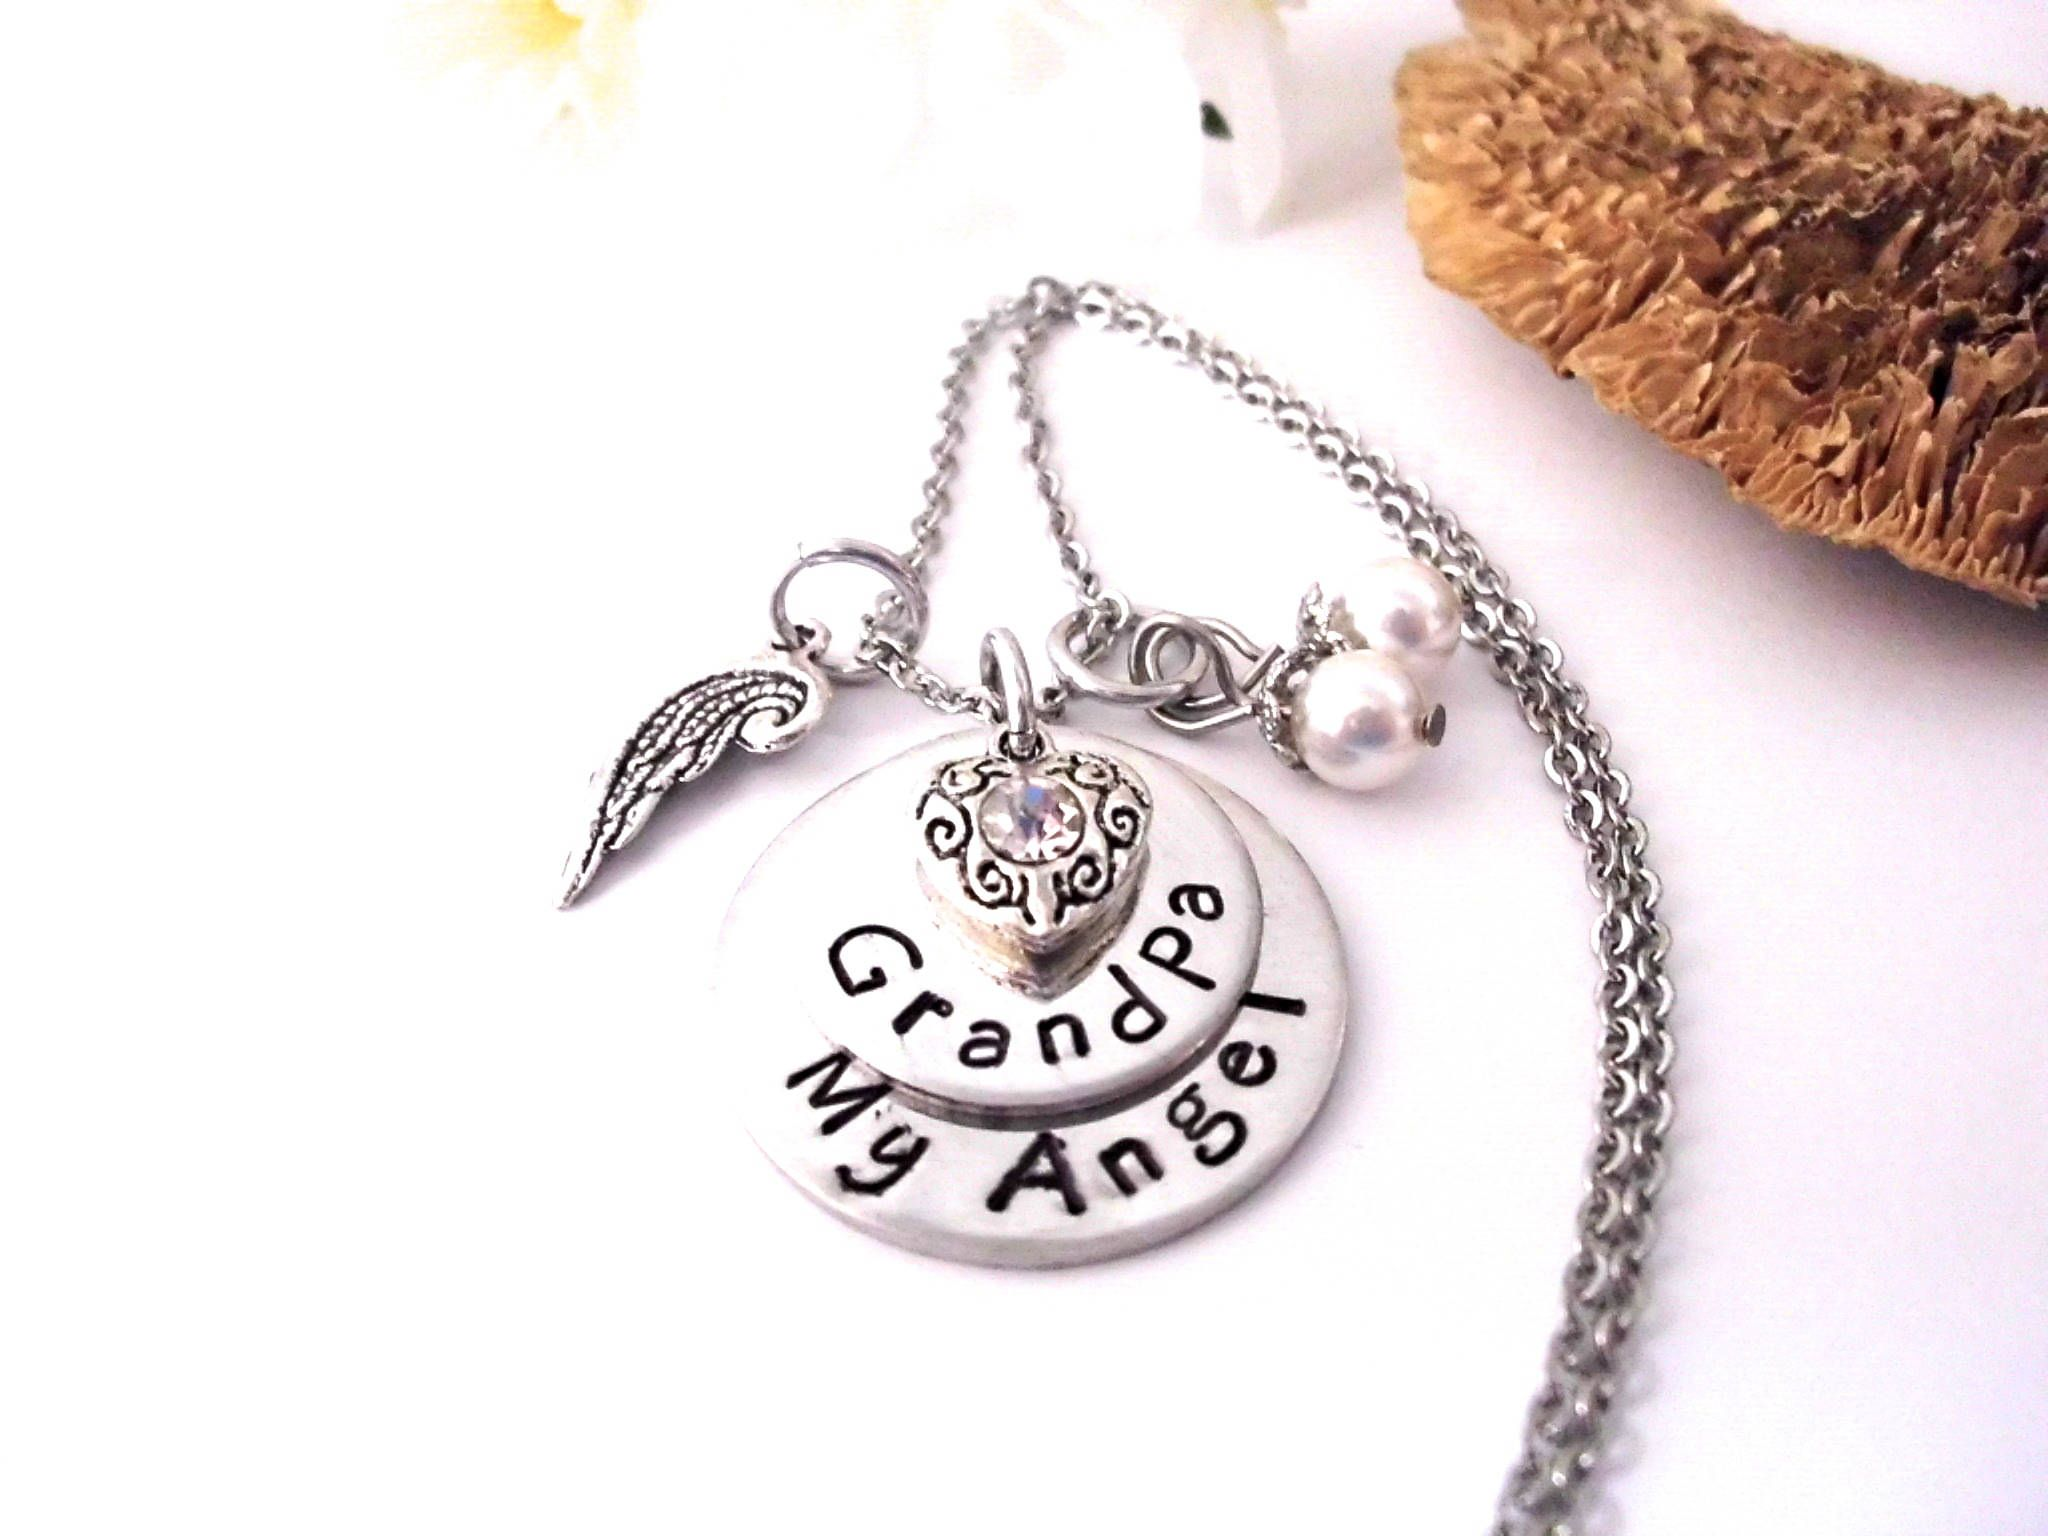 pewter memorial necklace with angel edited wing charm small galvanic cross necklaces engraved and mom